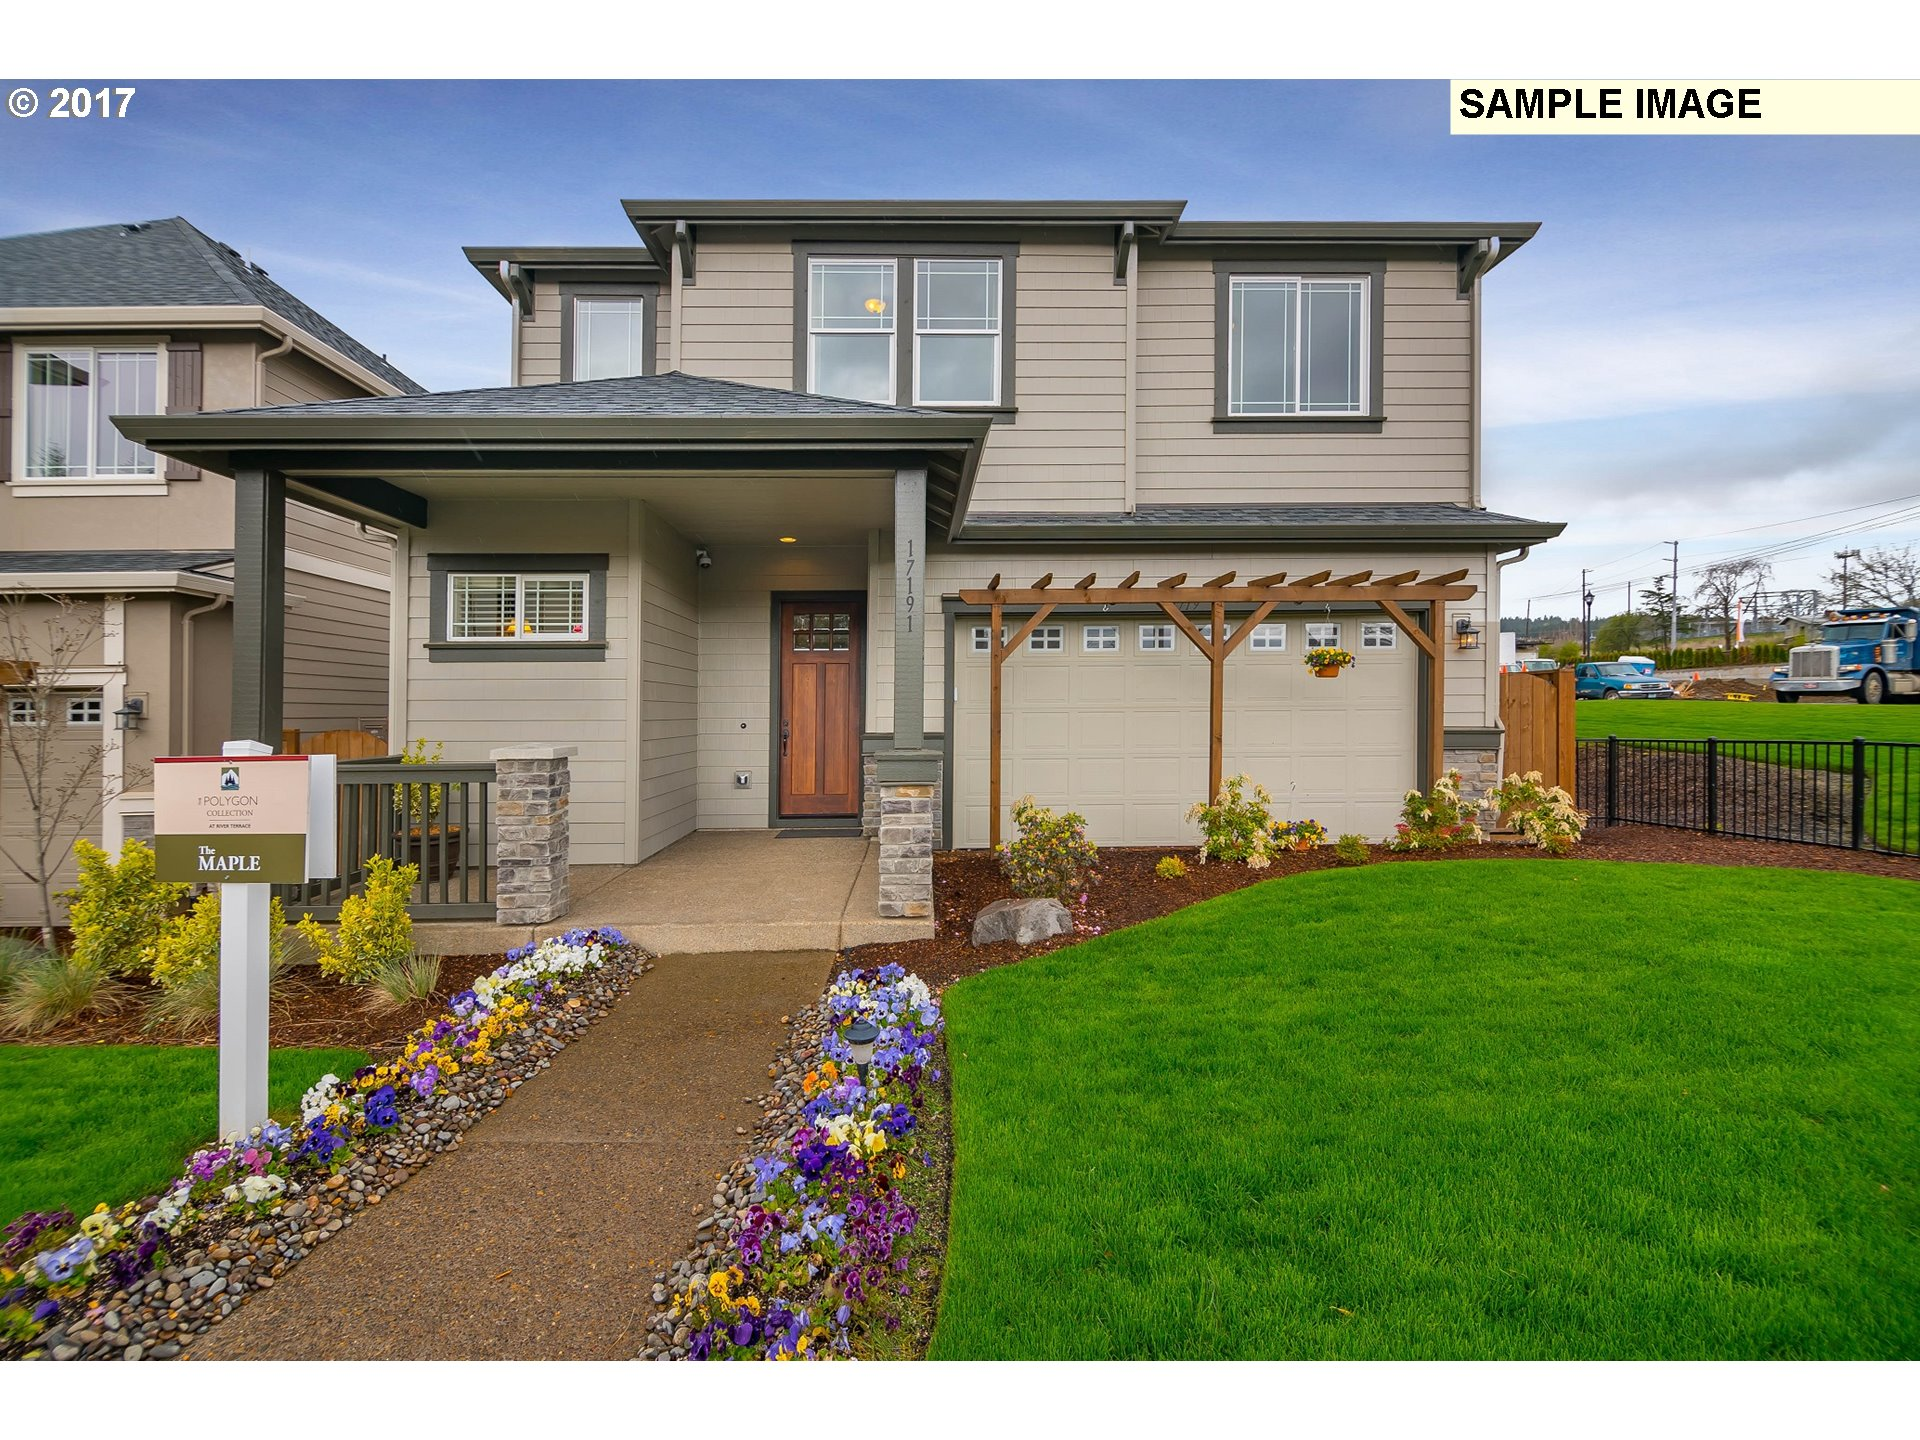 3043 sq. ft 4 bedrooms 2 bathrooms  House For Sale,Beaverton, OR